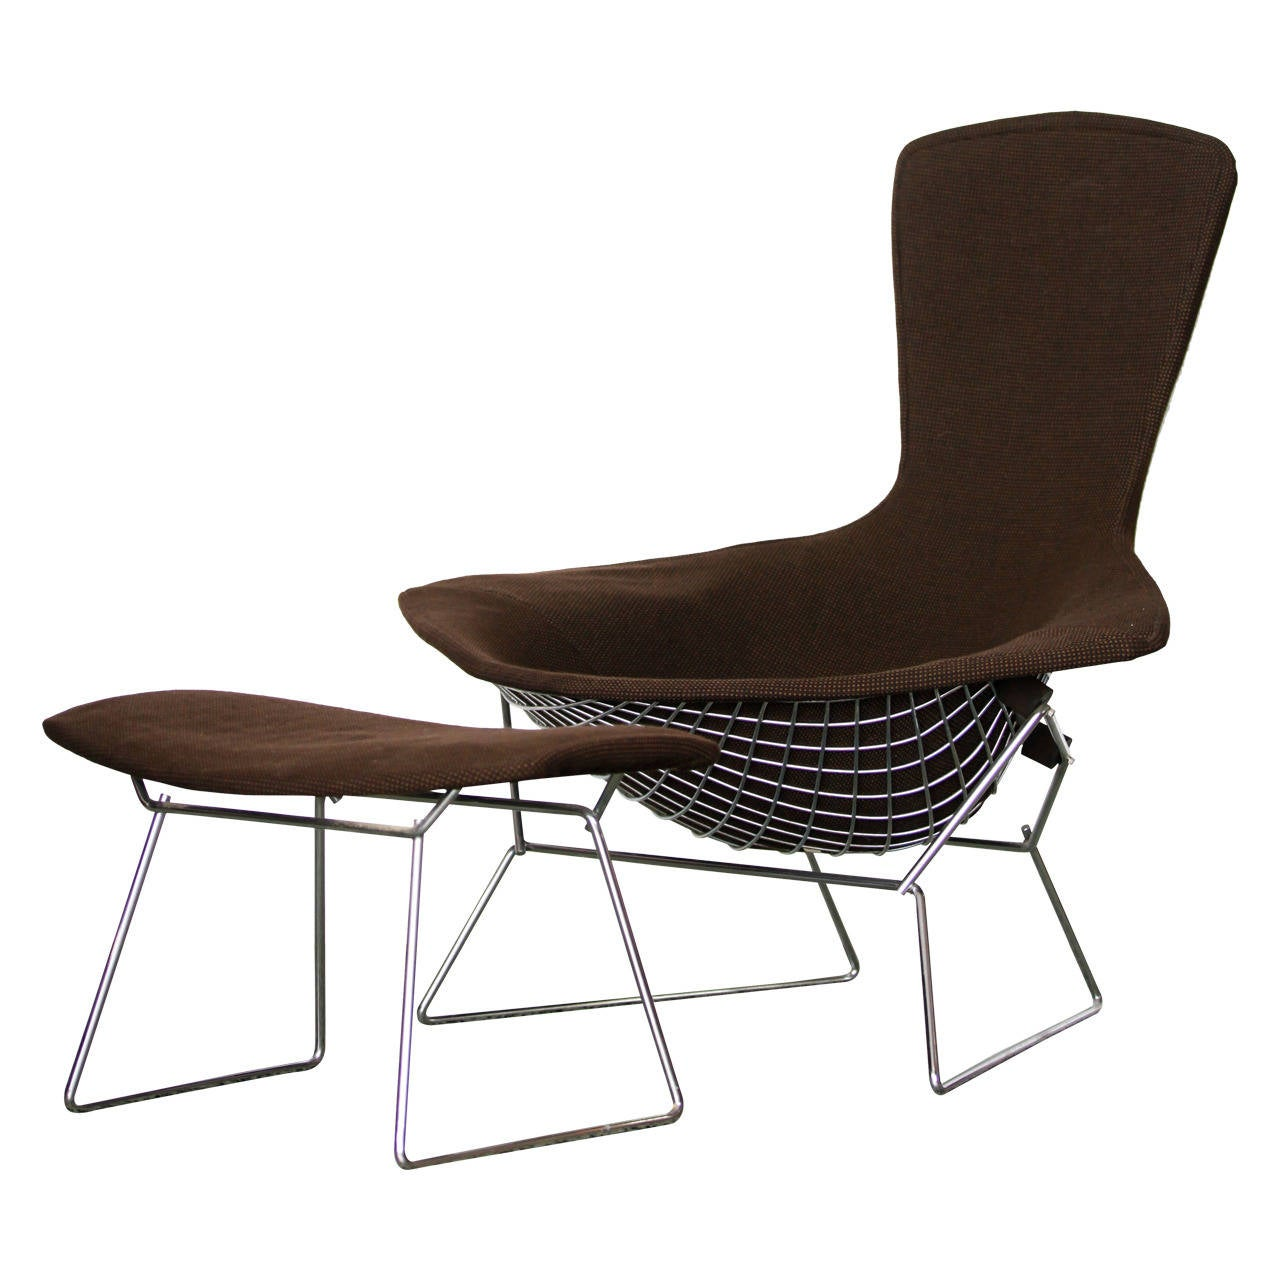 Bird Chair Bird Chair And Ottoman By Harry Bertoia For Knoll At 1stdibs